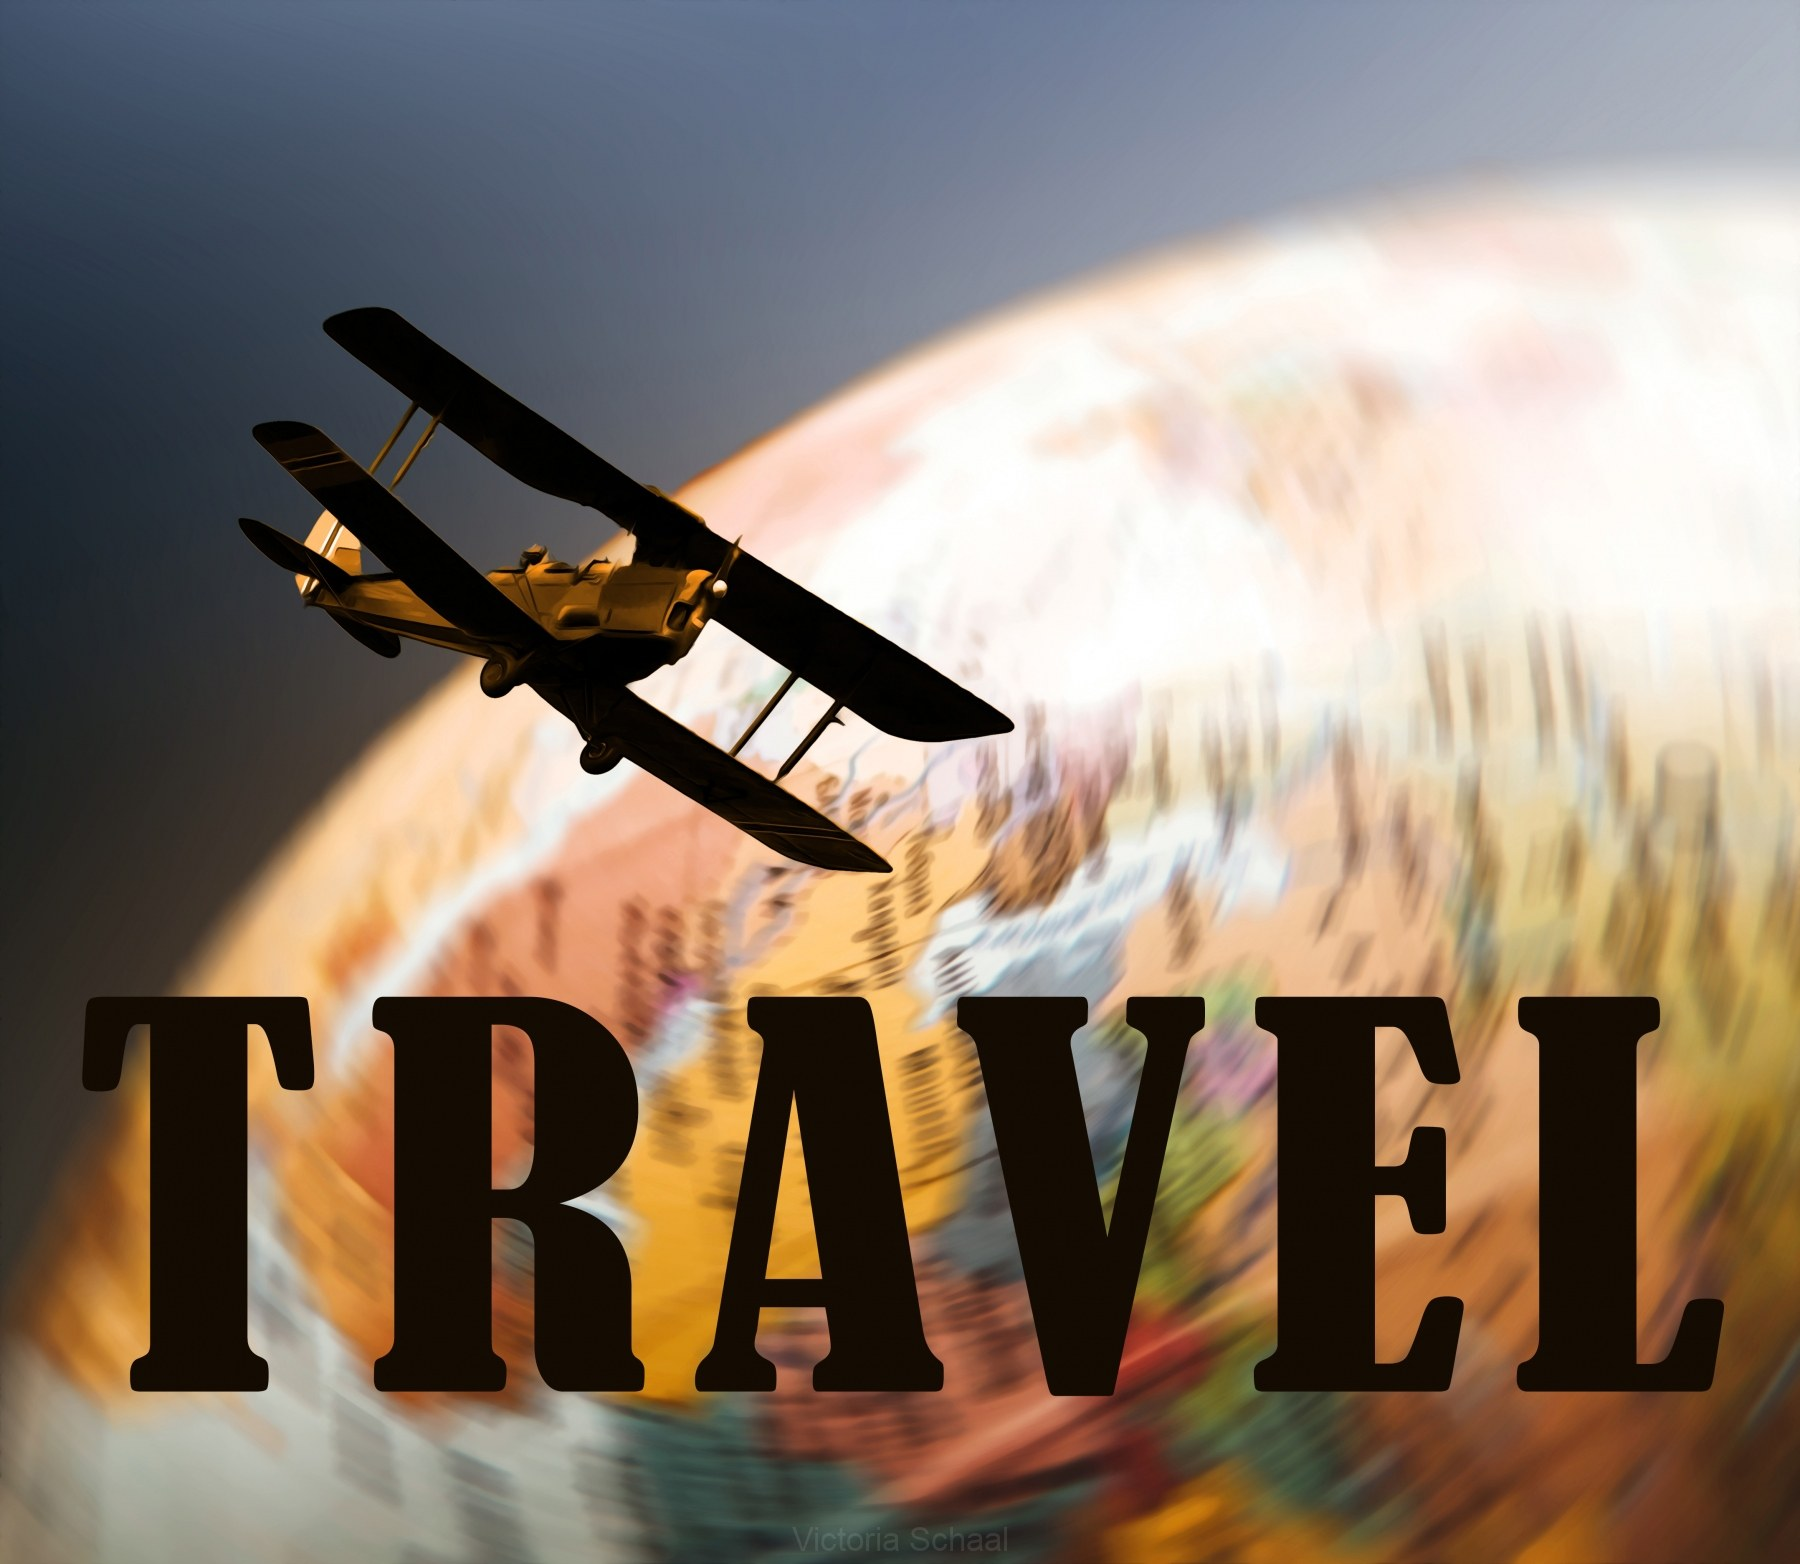 Retro and vintage poster of biplane travelling over spinning globe and text